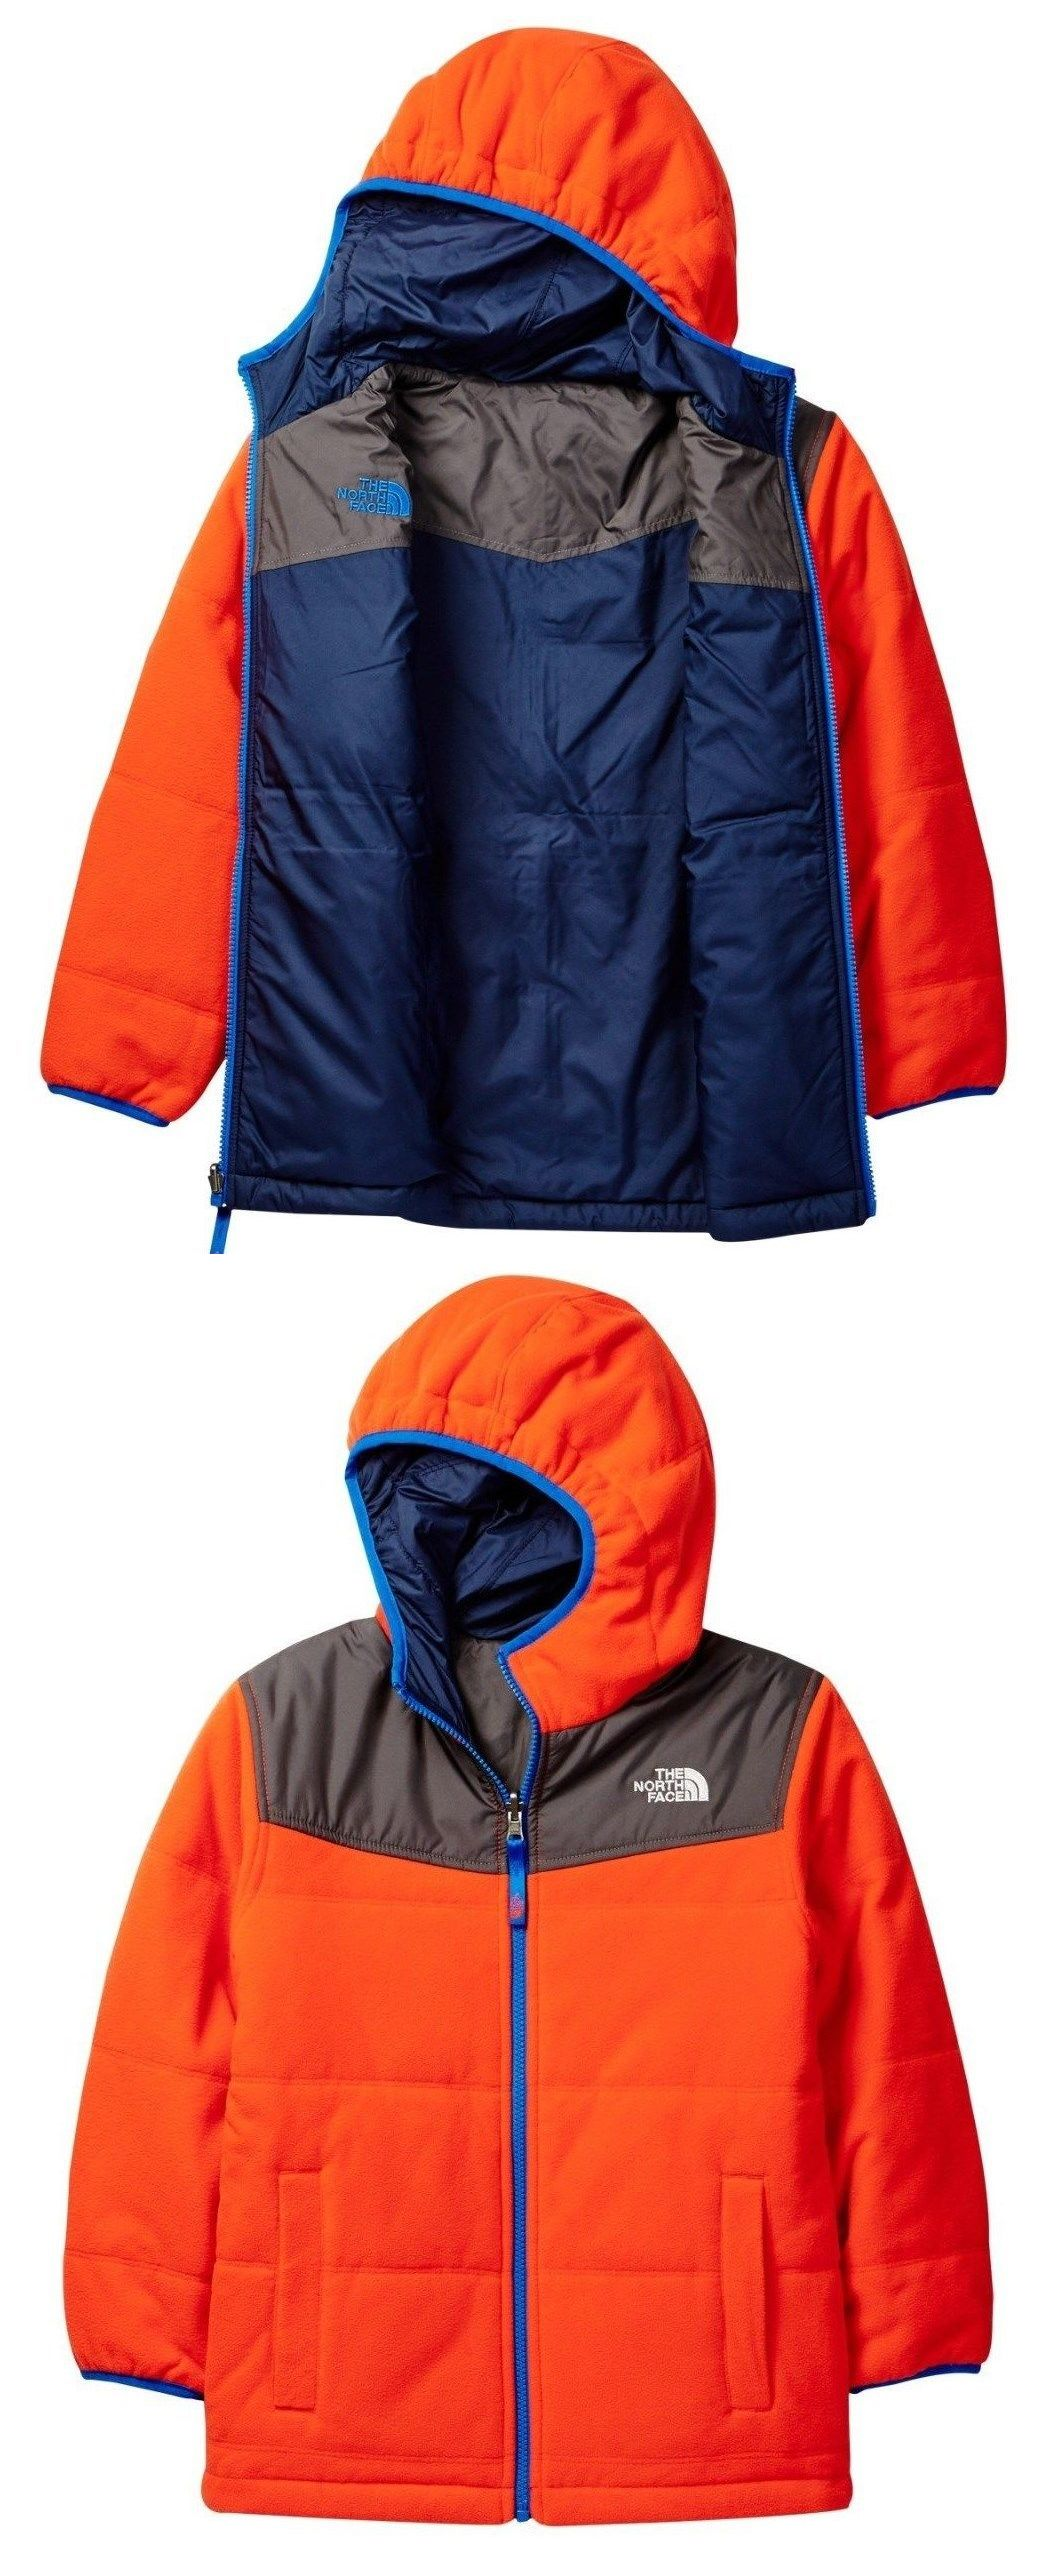 be7879970f3f Outerwear 51933  New  99 The North Face Xl Boys Reversible Winter ...